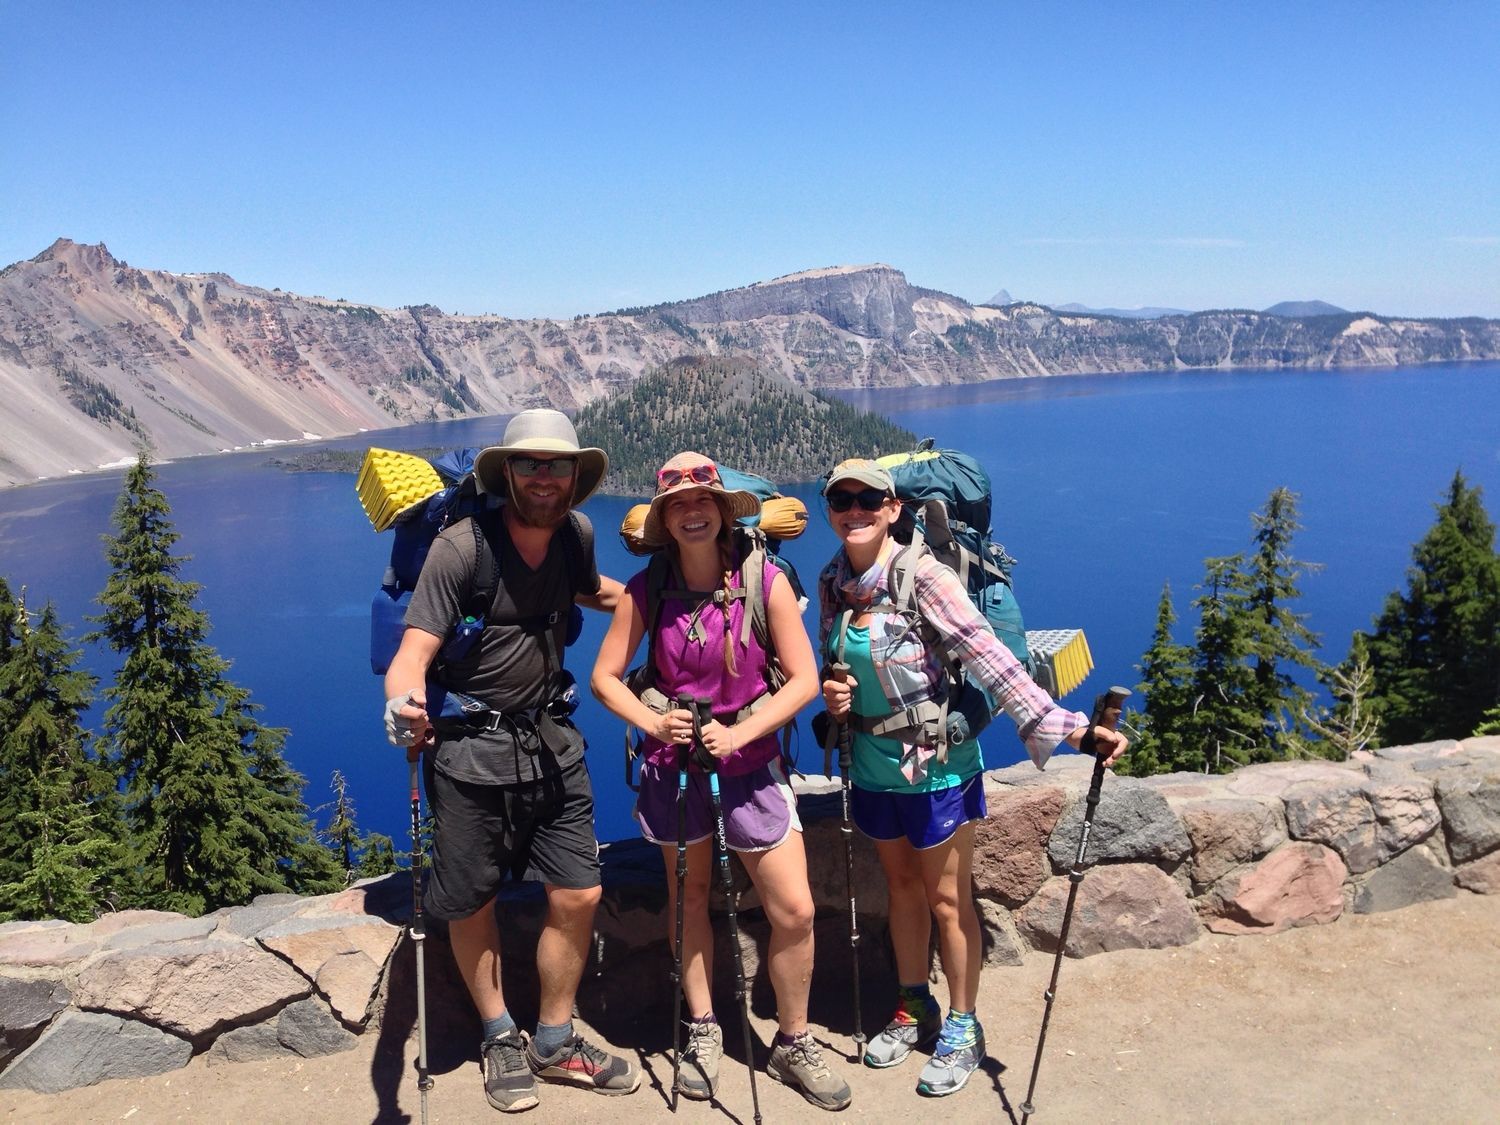 Three hikers at Crater Lake National Park, all using trekking poles.